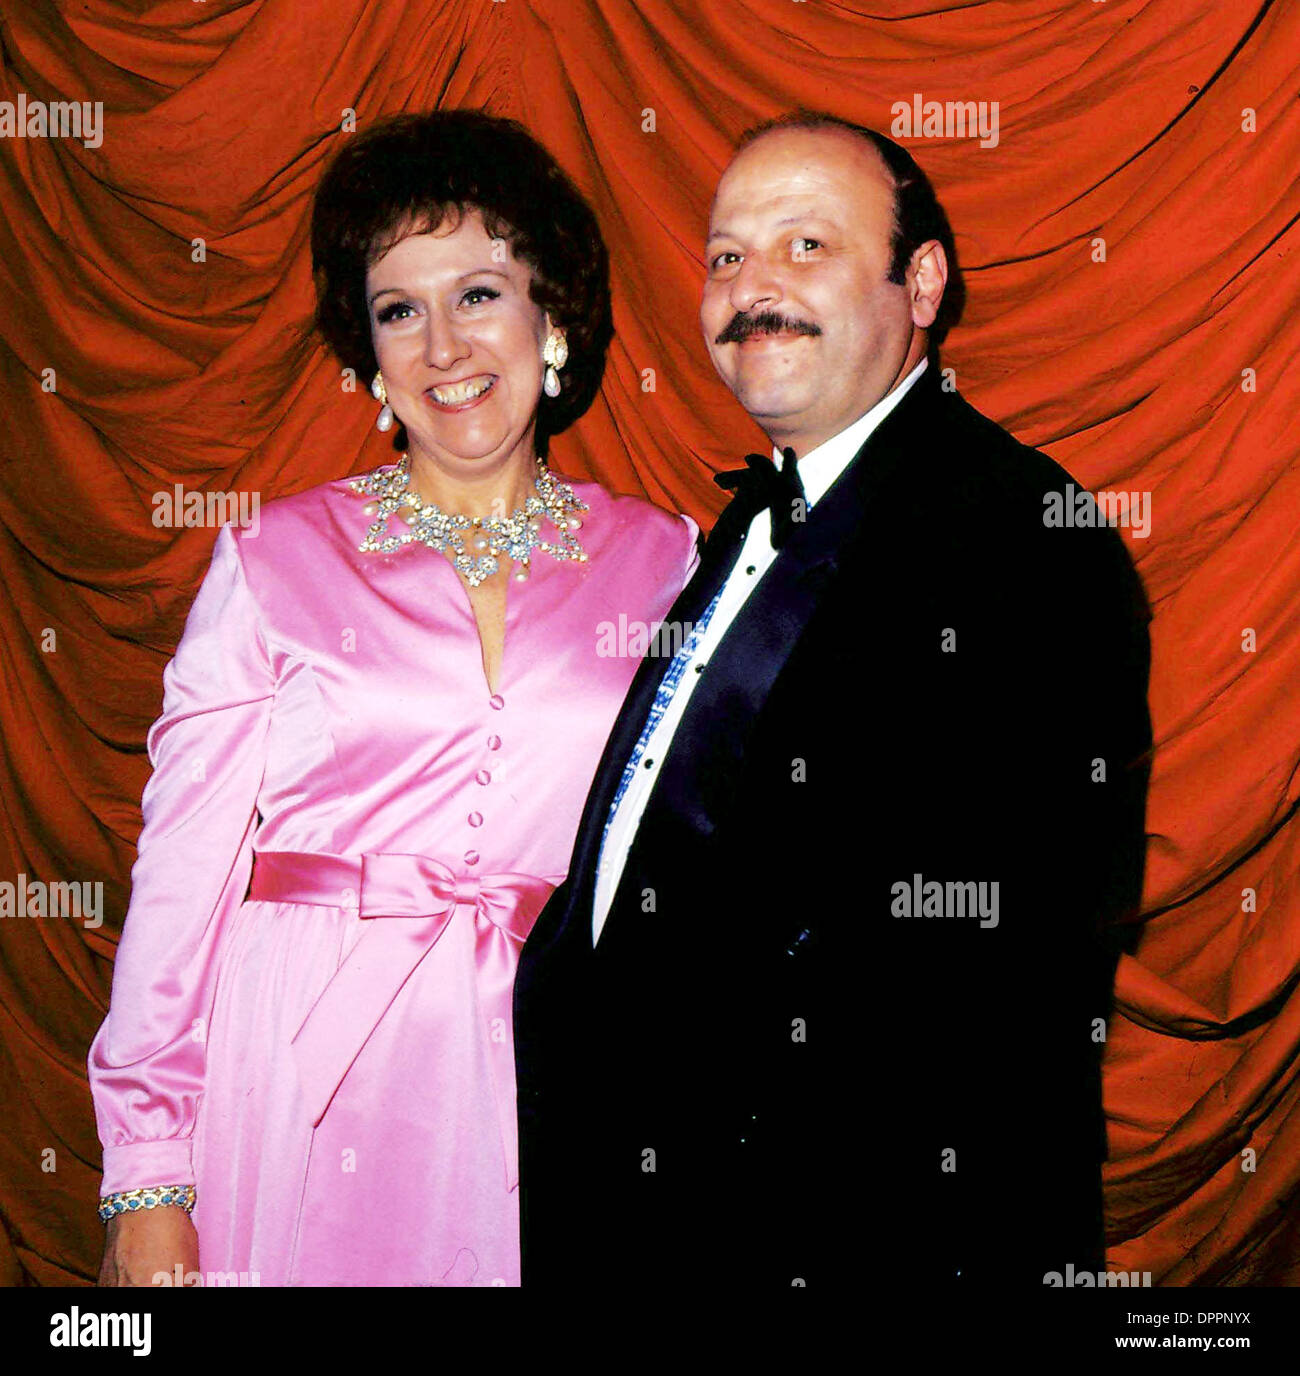 Her Husband William Stock Photos & Her Husband William Stock Images ...